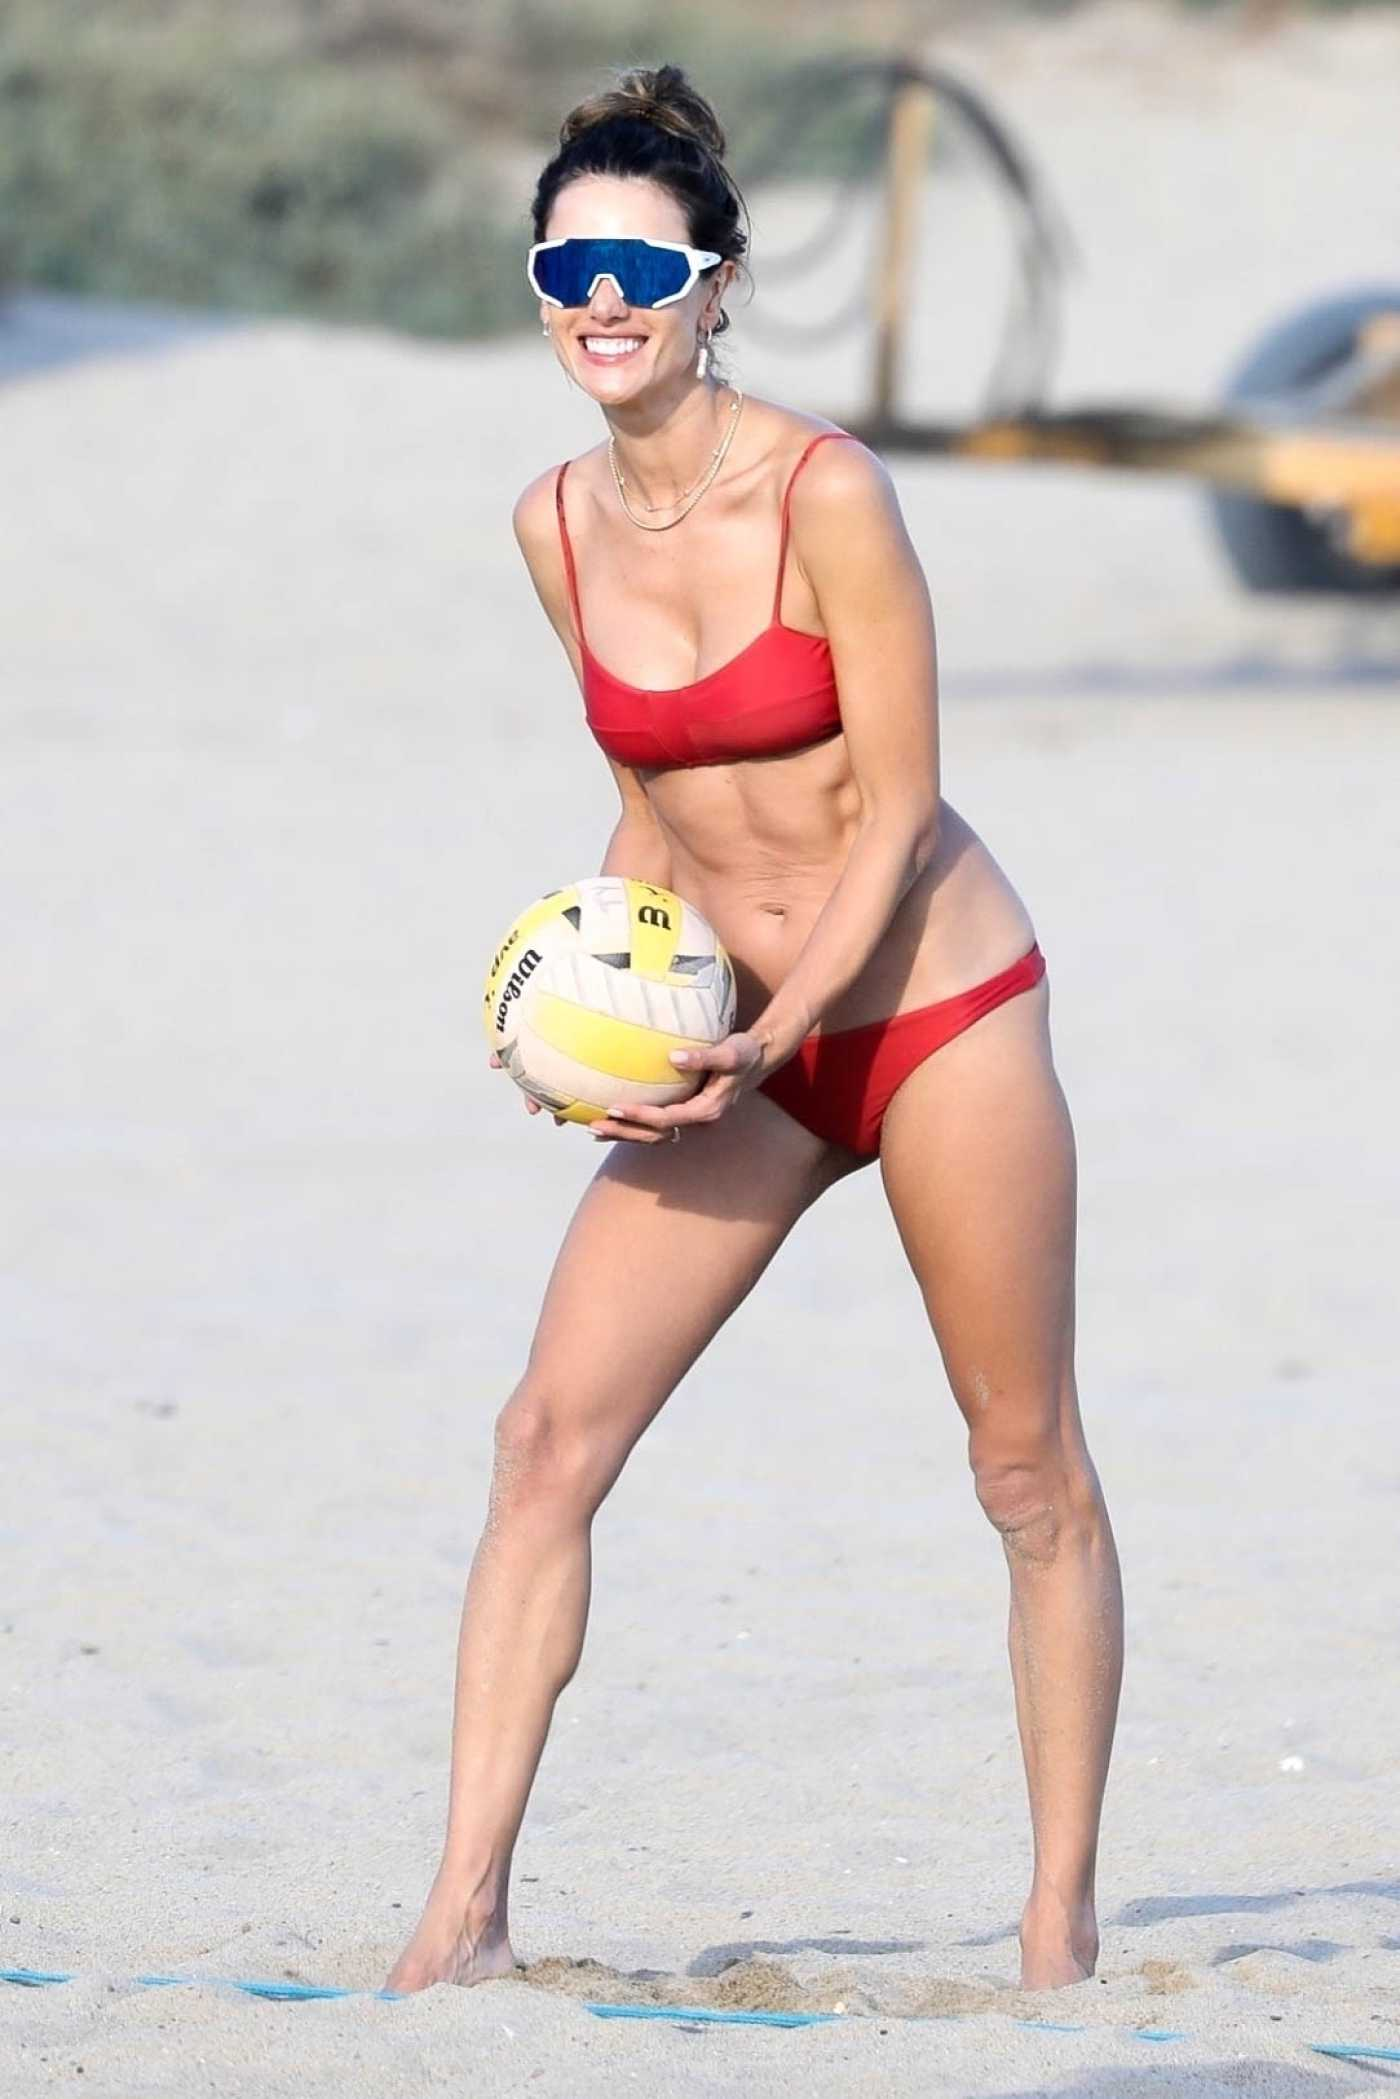 Alessandra Ambrosio in a Red Bikini Plays Volleyball on the Beach in Malibu 08/15/2020